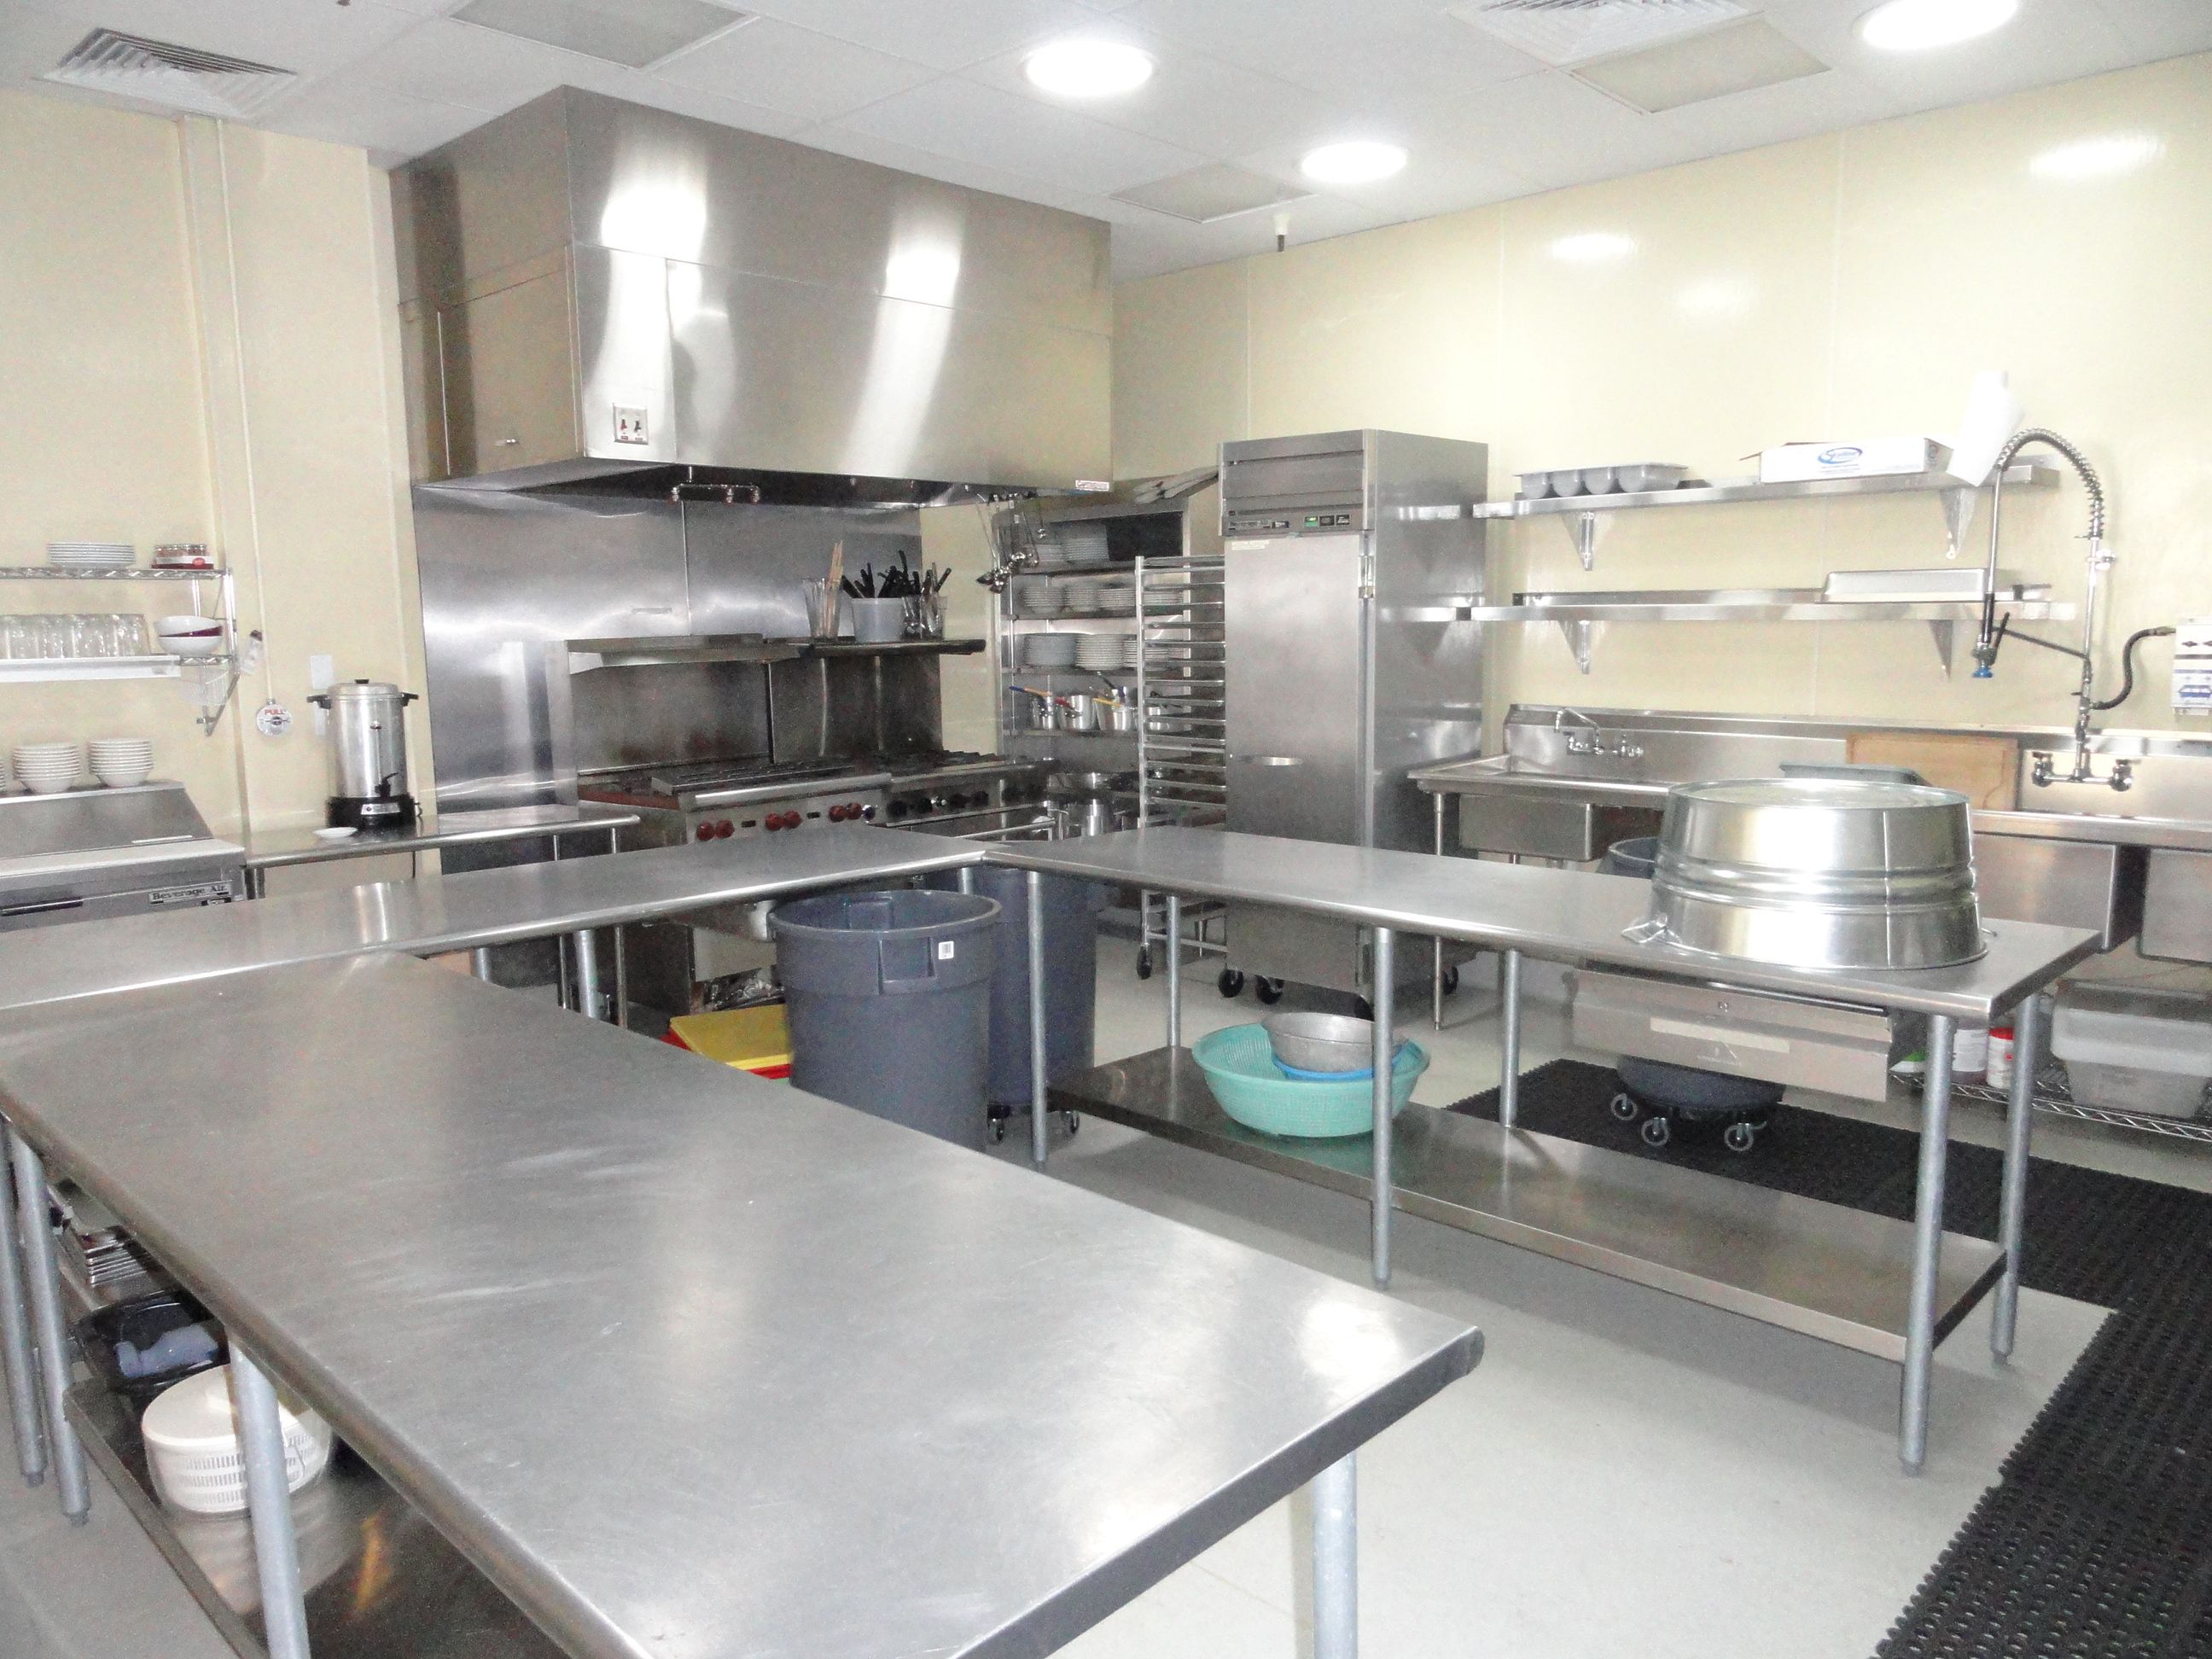 12 excellent small commercial kitchen equipment digital picture ideas house details - Professional kitchen designs ...